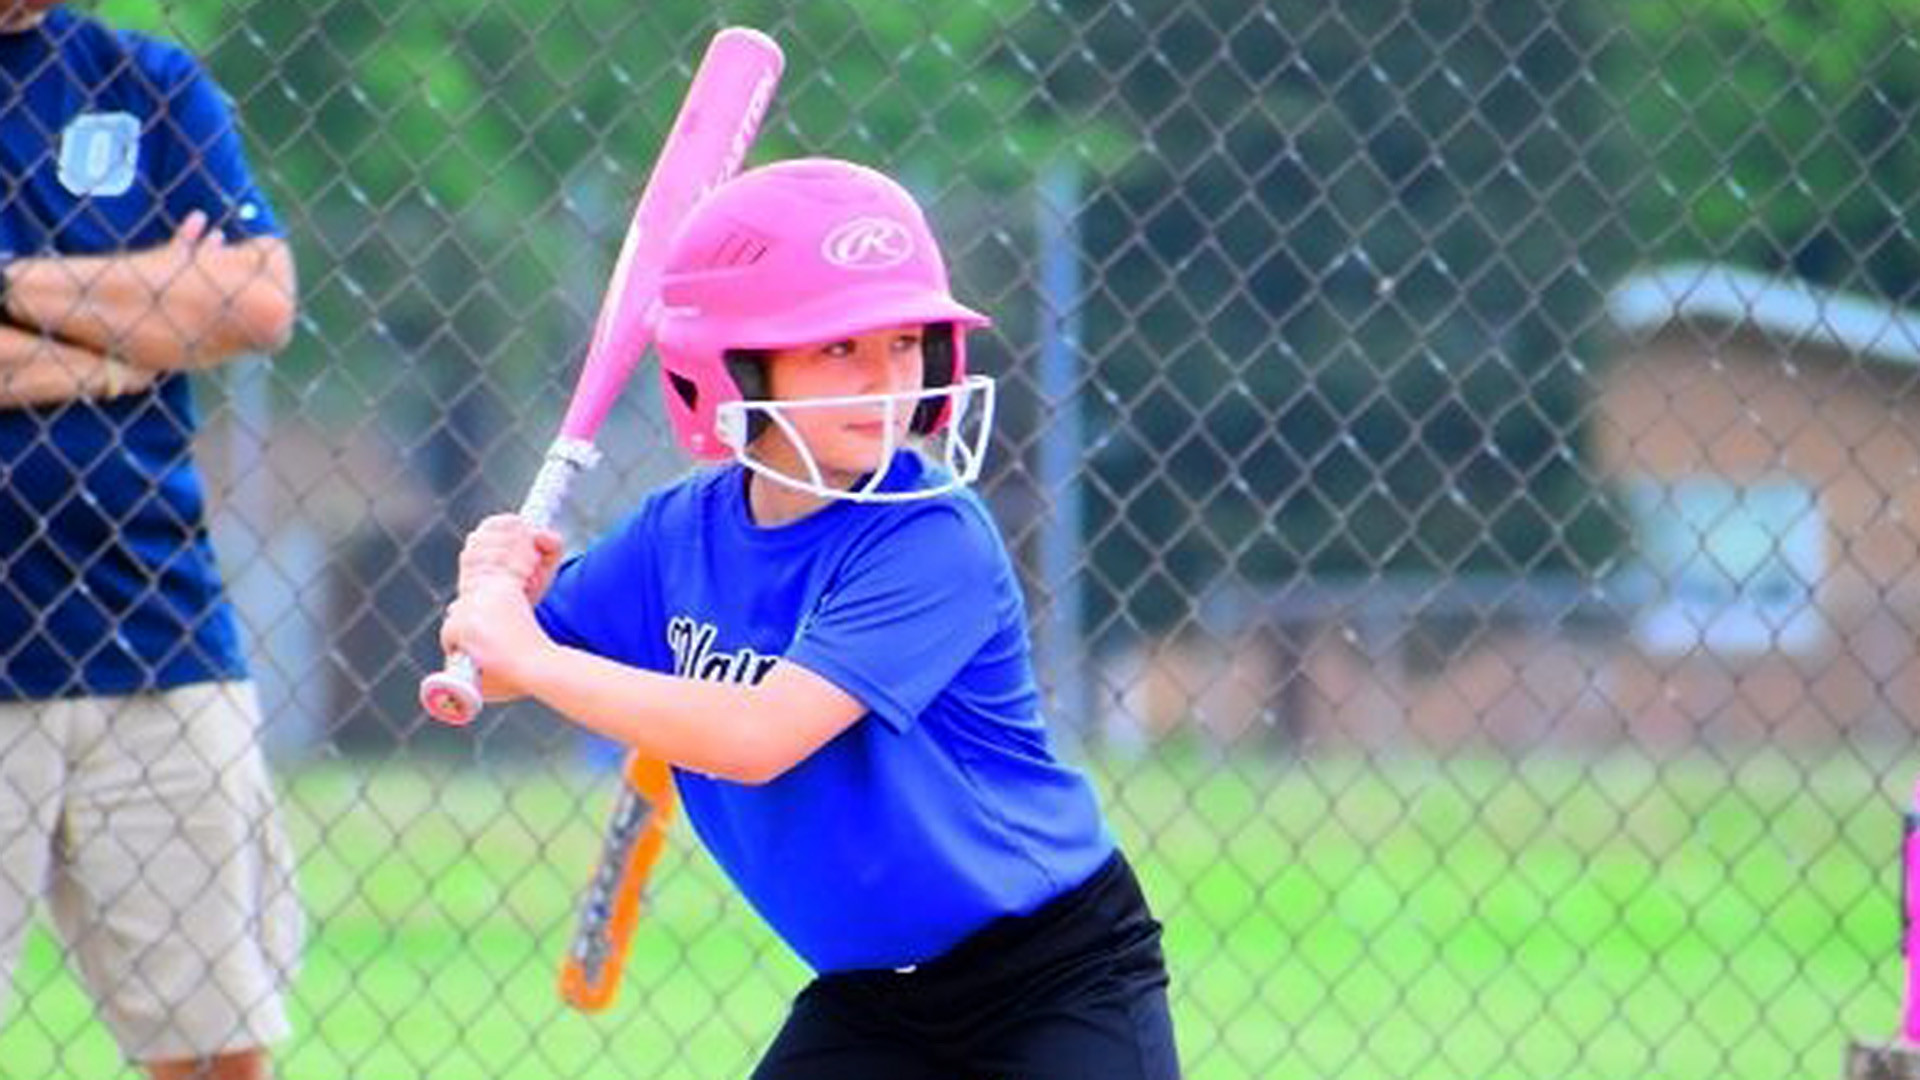 'It made me feel that I wasn't good enough': After being mocked by game at Naperville Chuck E Cheese, 9-year-old girl gets softball snub removed